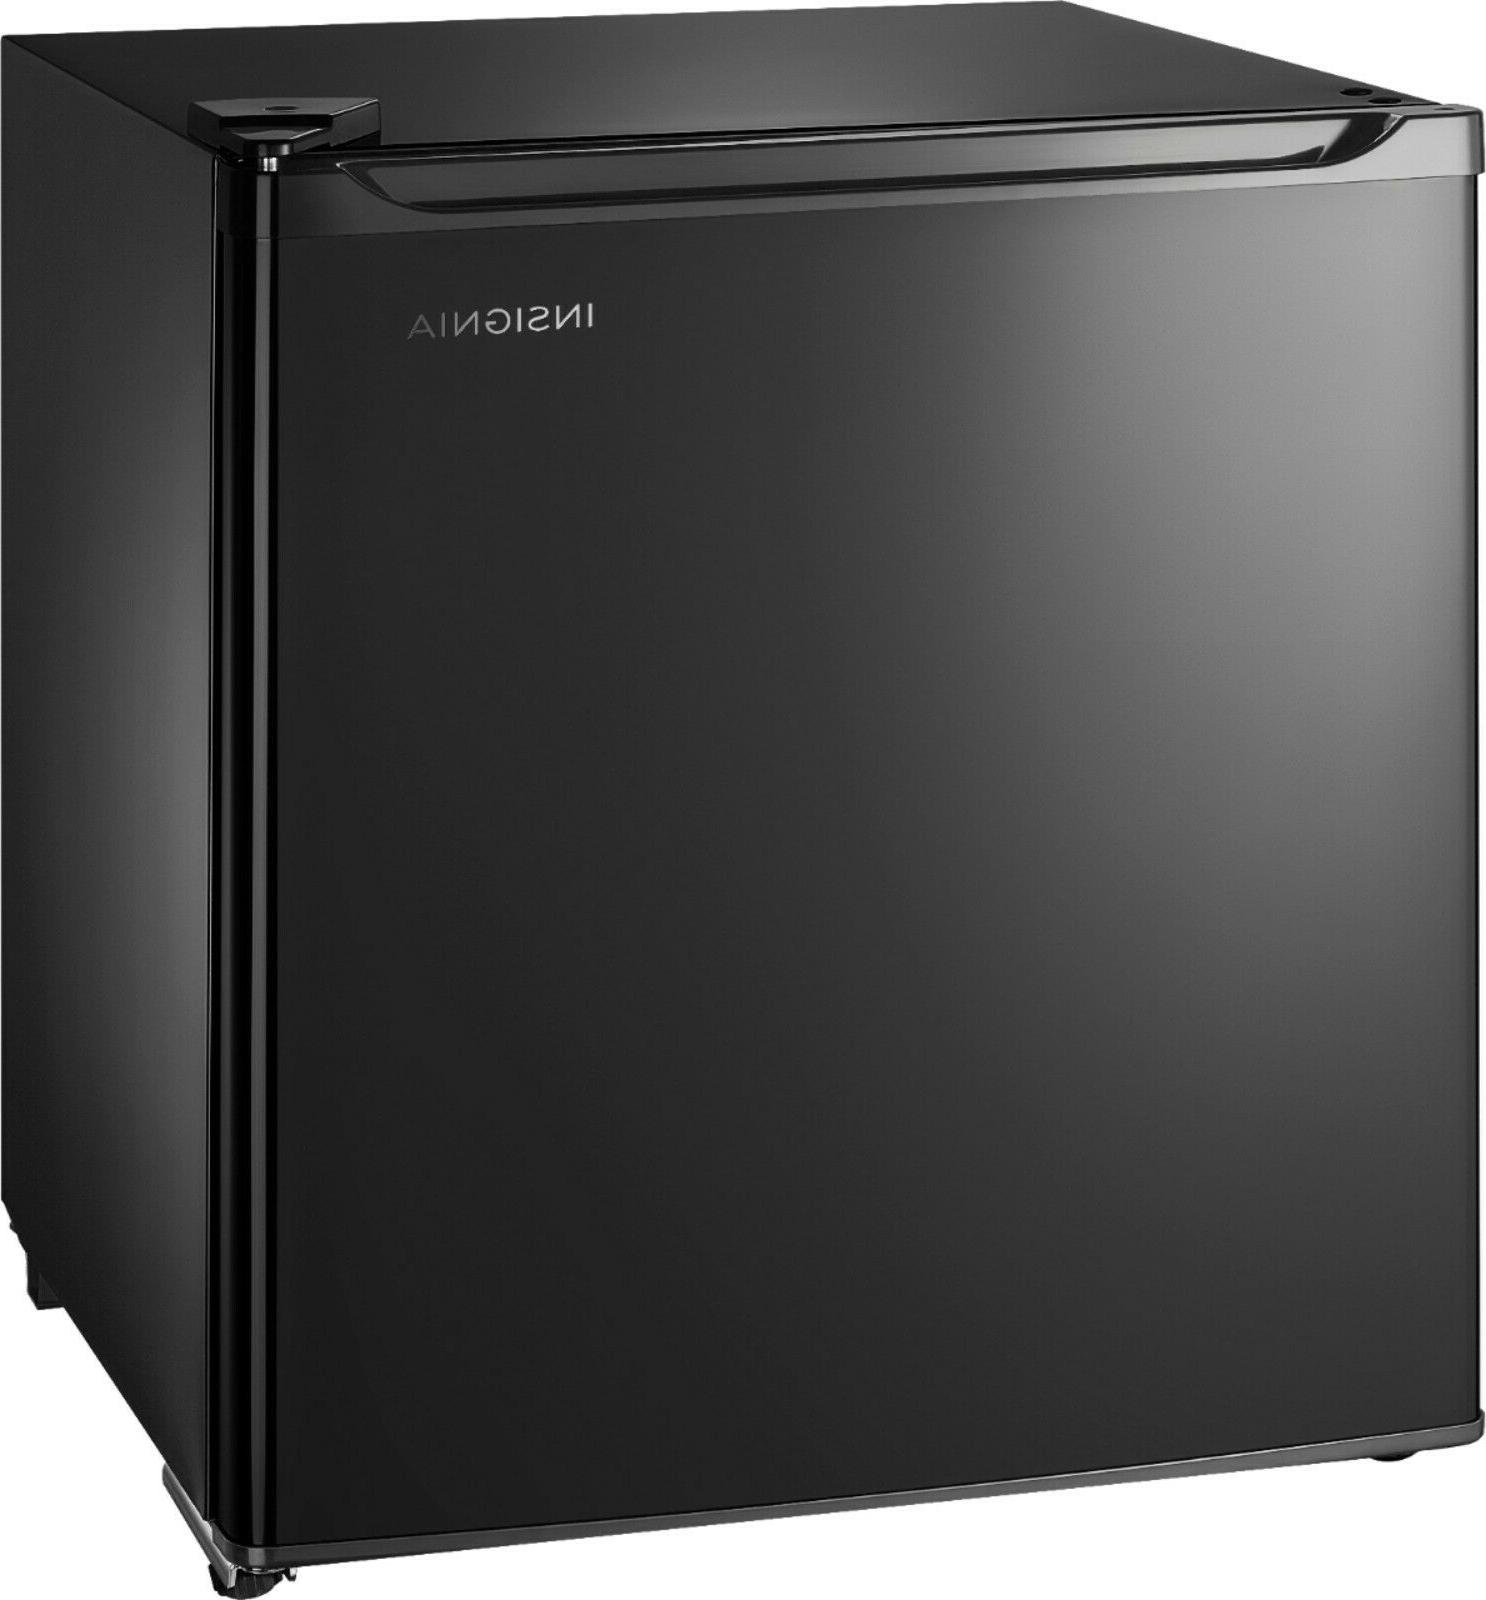 Mini Fridges - Insignia - Mini Fridge